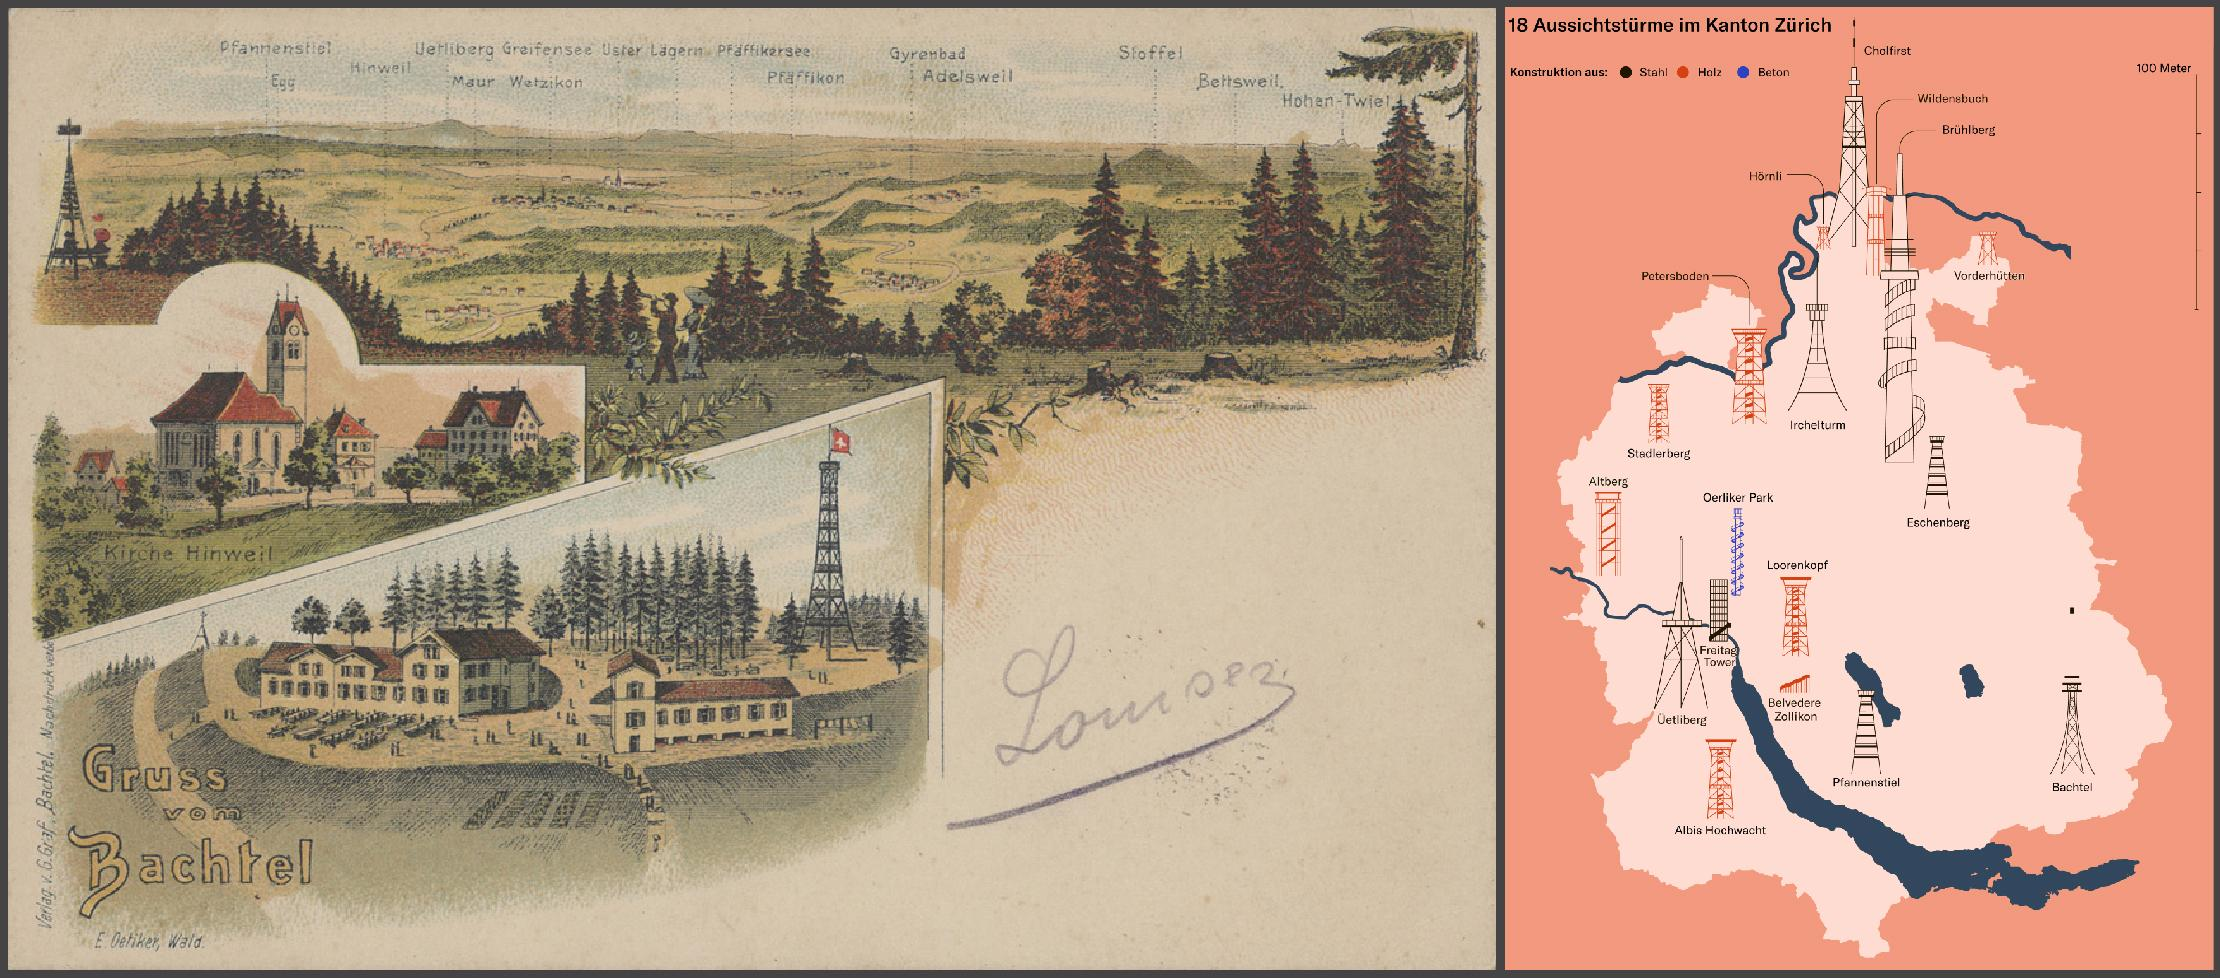 Left: Greetings from the Bachtel. Picture postcard, around 1902. G. Graf publishers. Department of Prints and Drawings and Photo Archive, call number: Ansichtskarten, ZH, Bachtel, 1 - Right: infographic by Joana Kelén from: Zürich – das Land der Aussichtstürme, NZZ, 20.10.2017